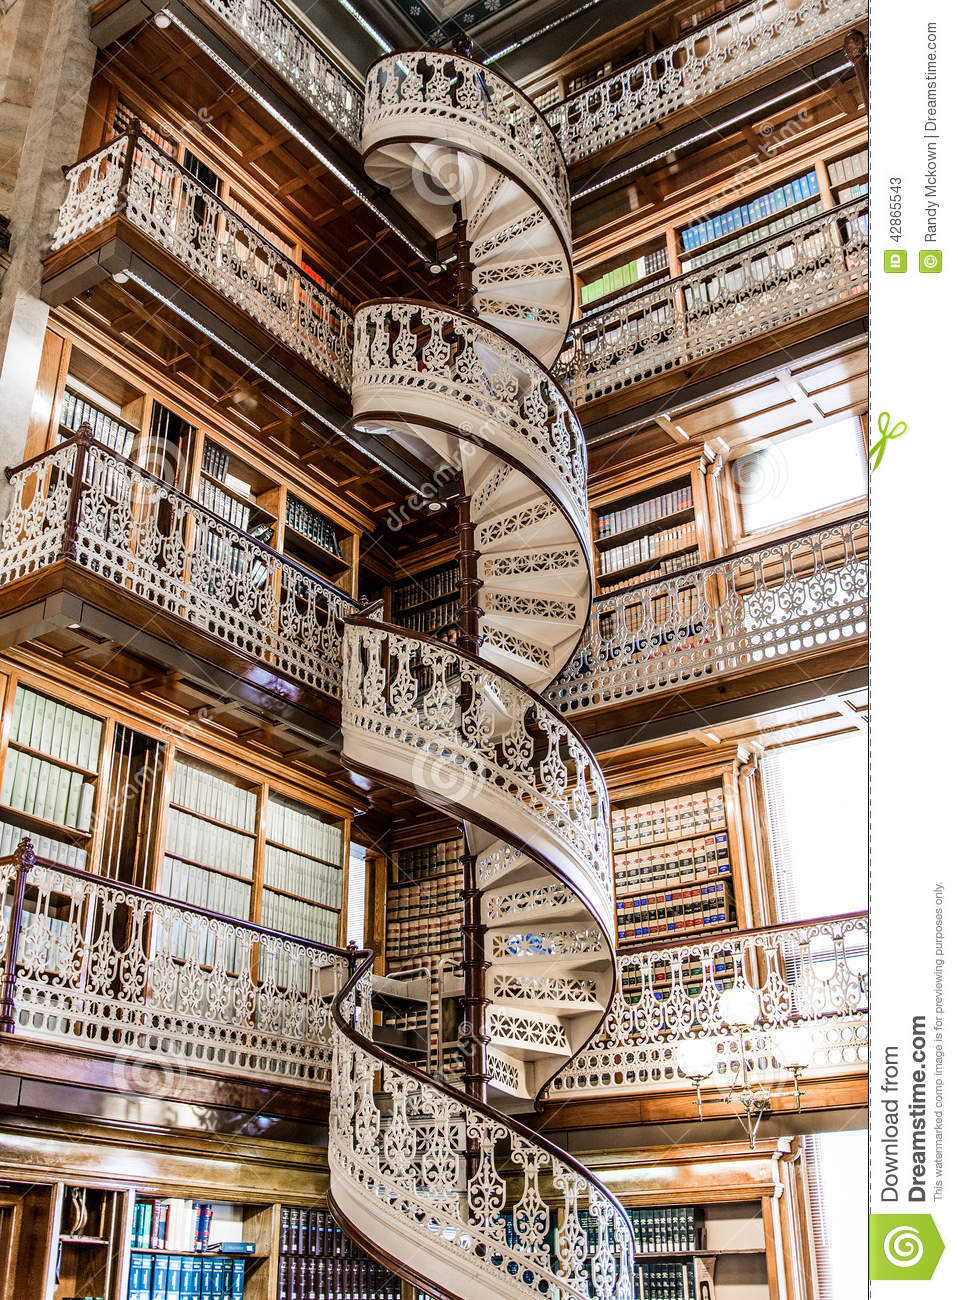 Spiral staircase architecture details royalty free stock for Architecture spiral staircase